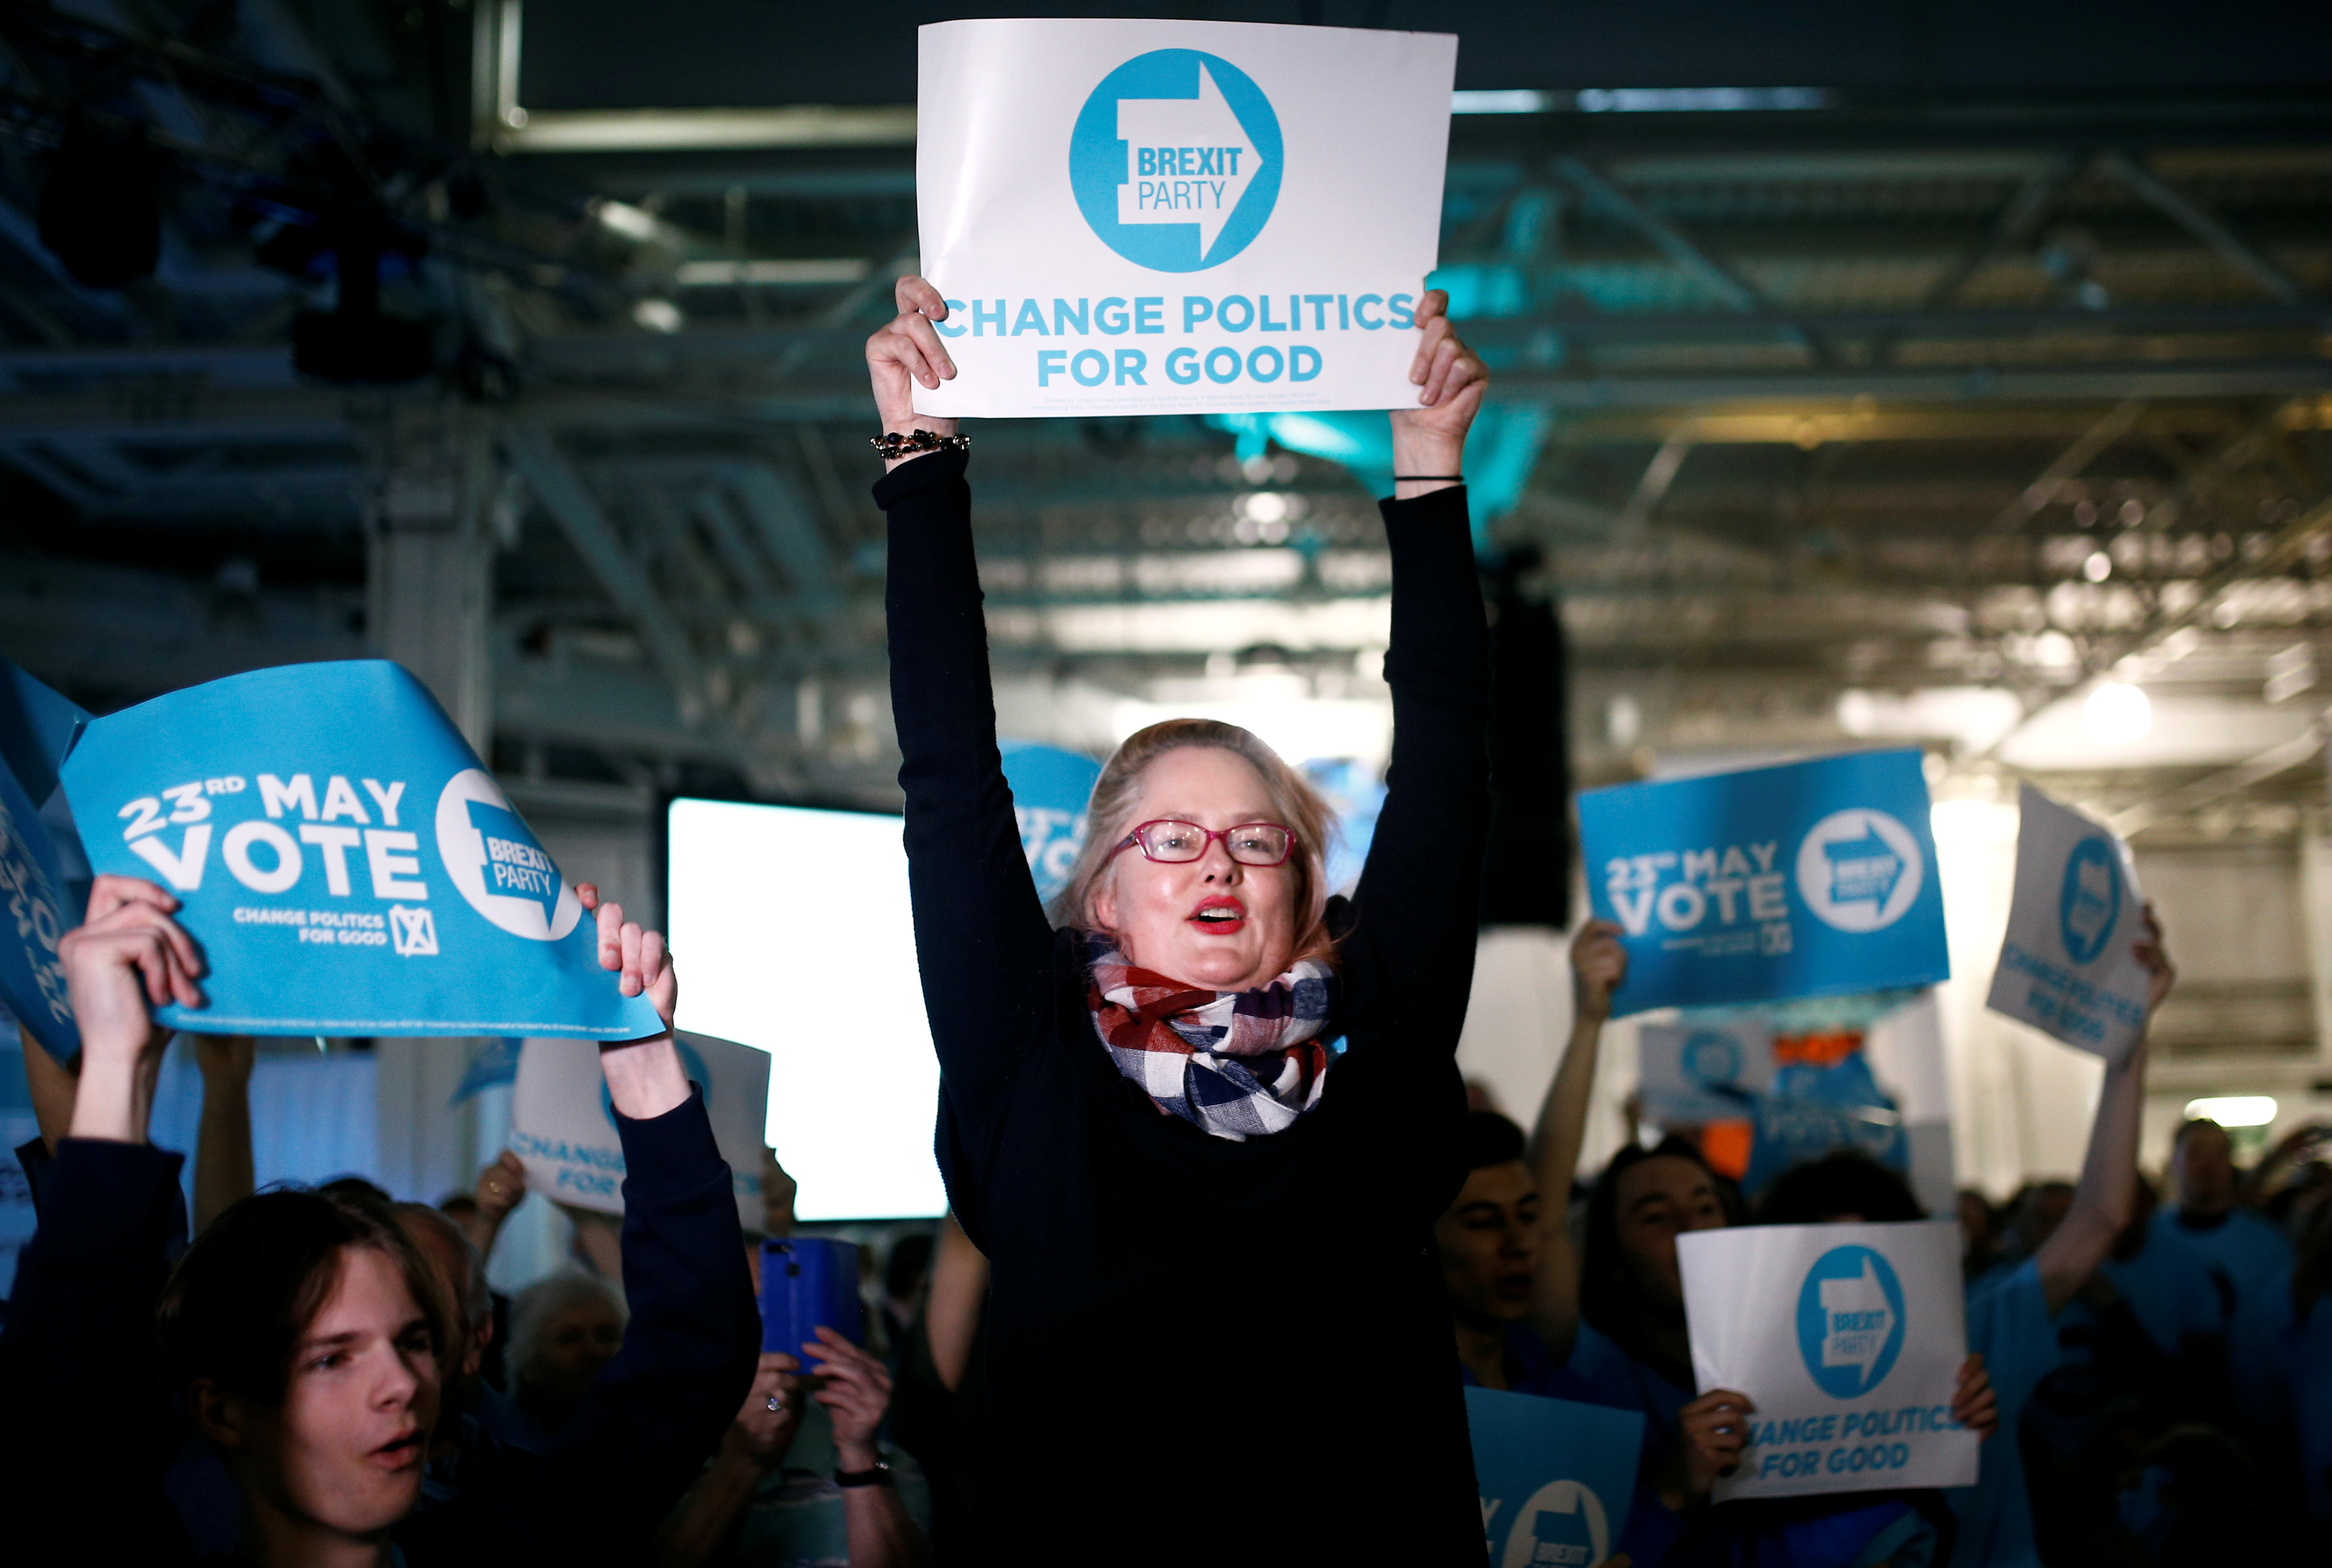 A woman holds up a placard at a Brexit Party campaign event in London, Britain, May 21, 2019. REUTERS/Henry Nicholls